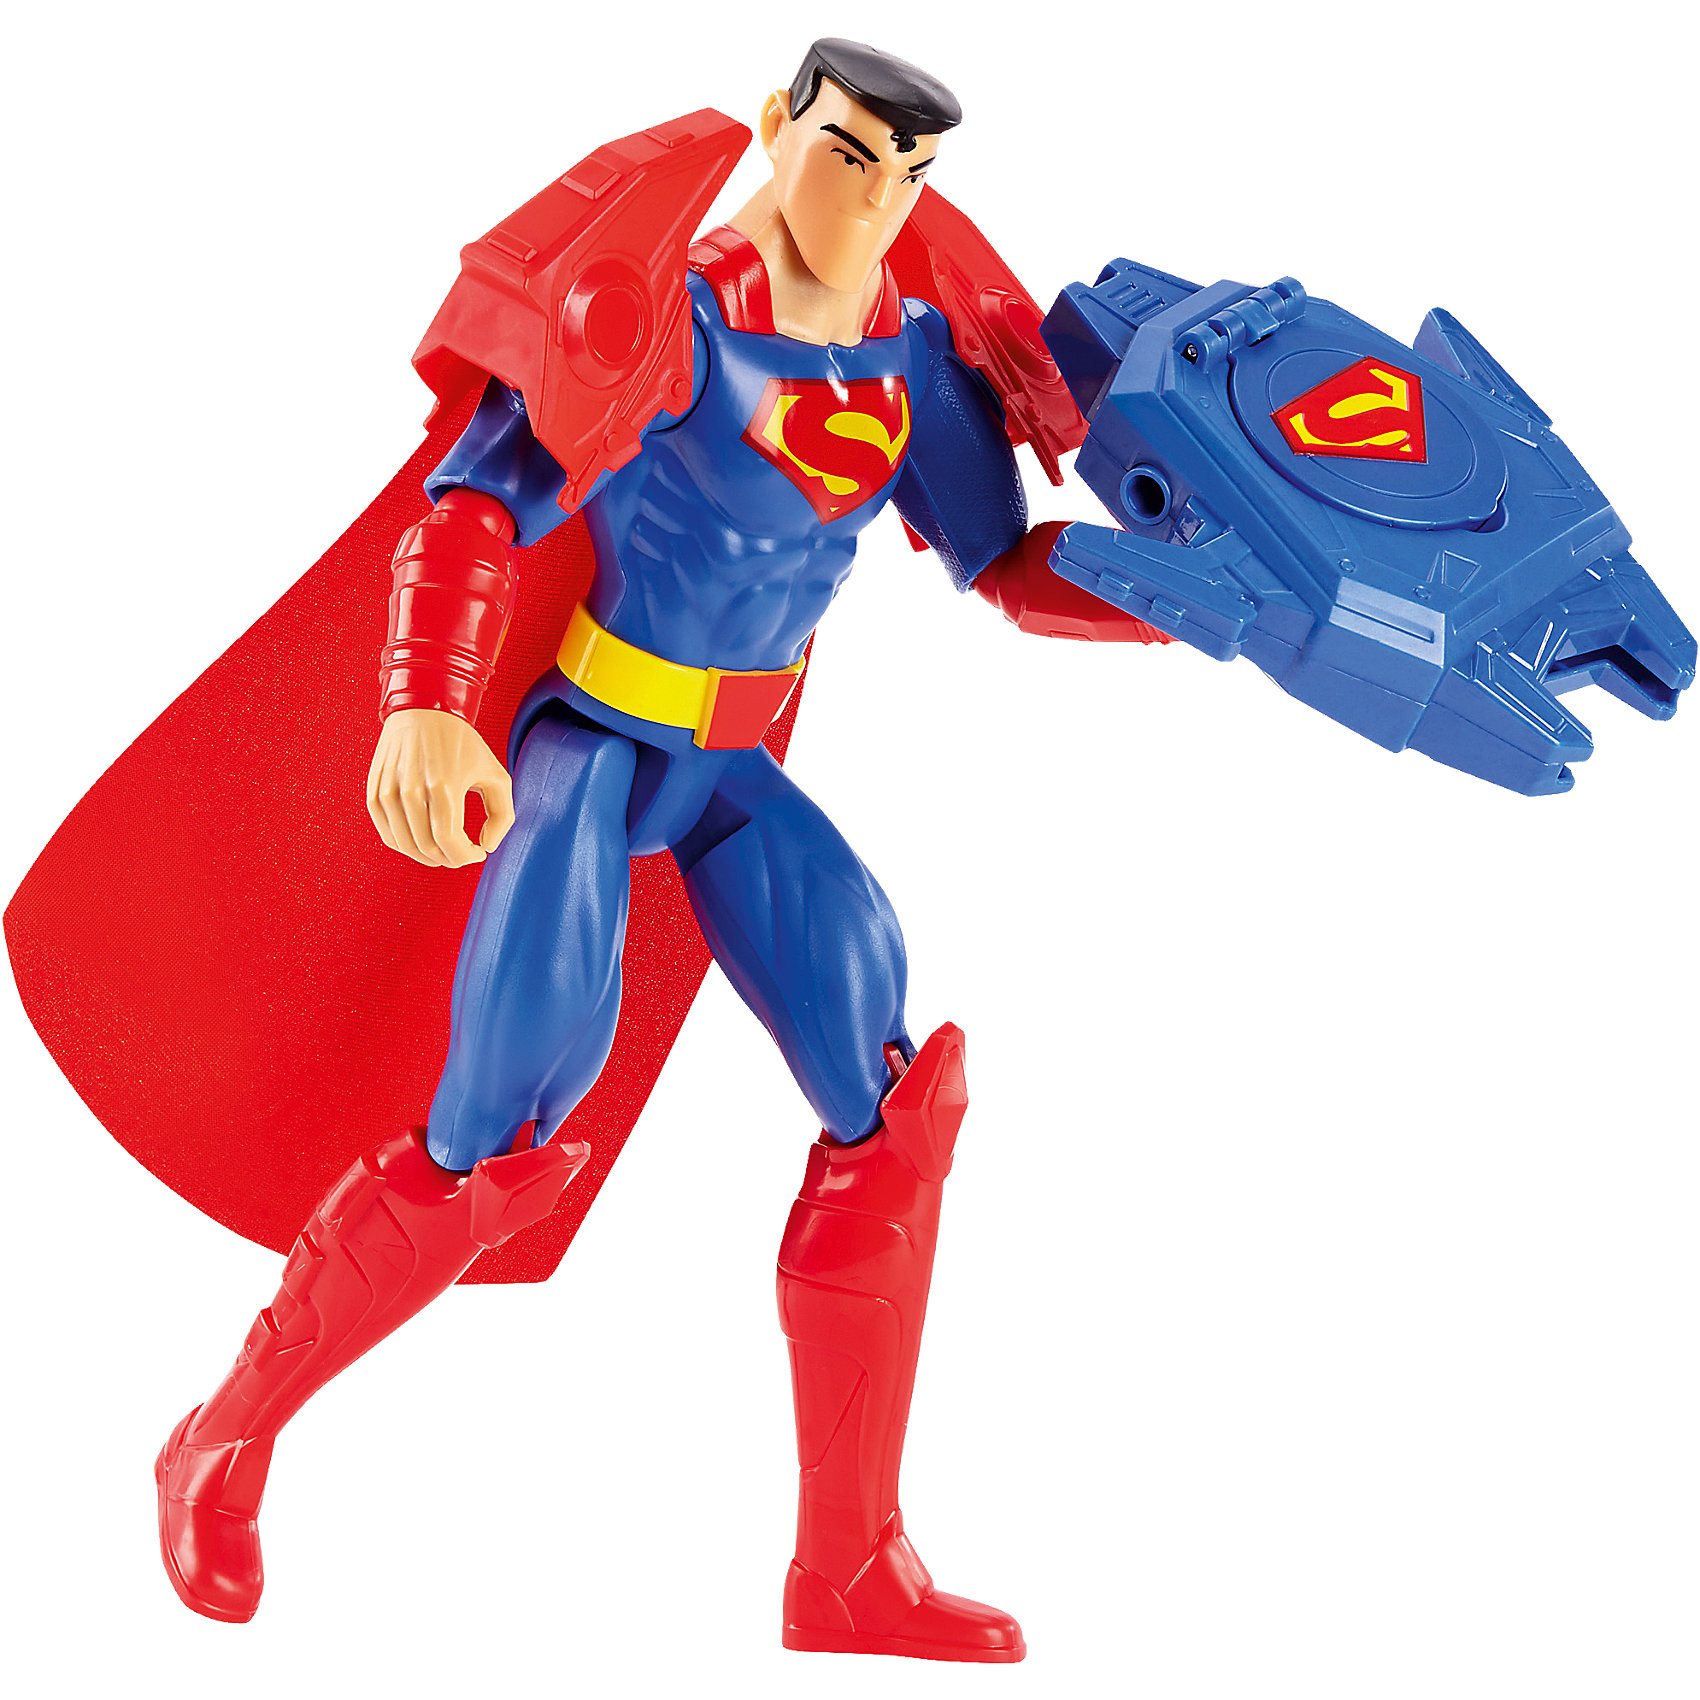 фигурка-superman-armor-blast-бэтме-н